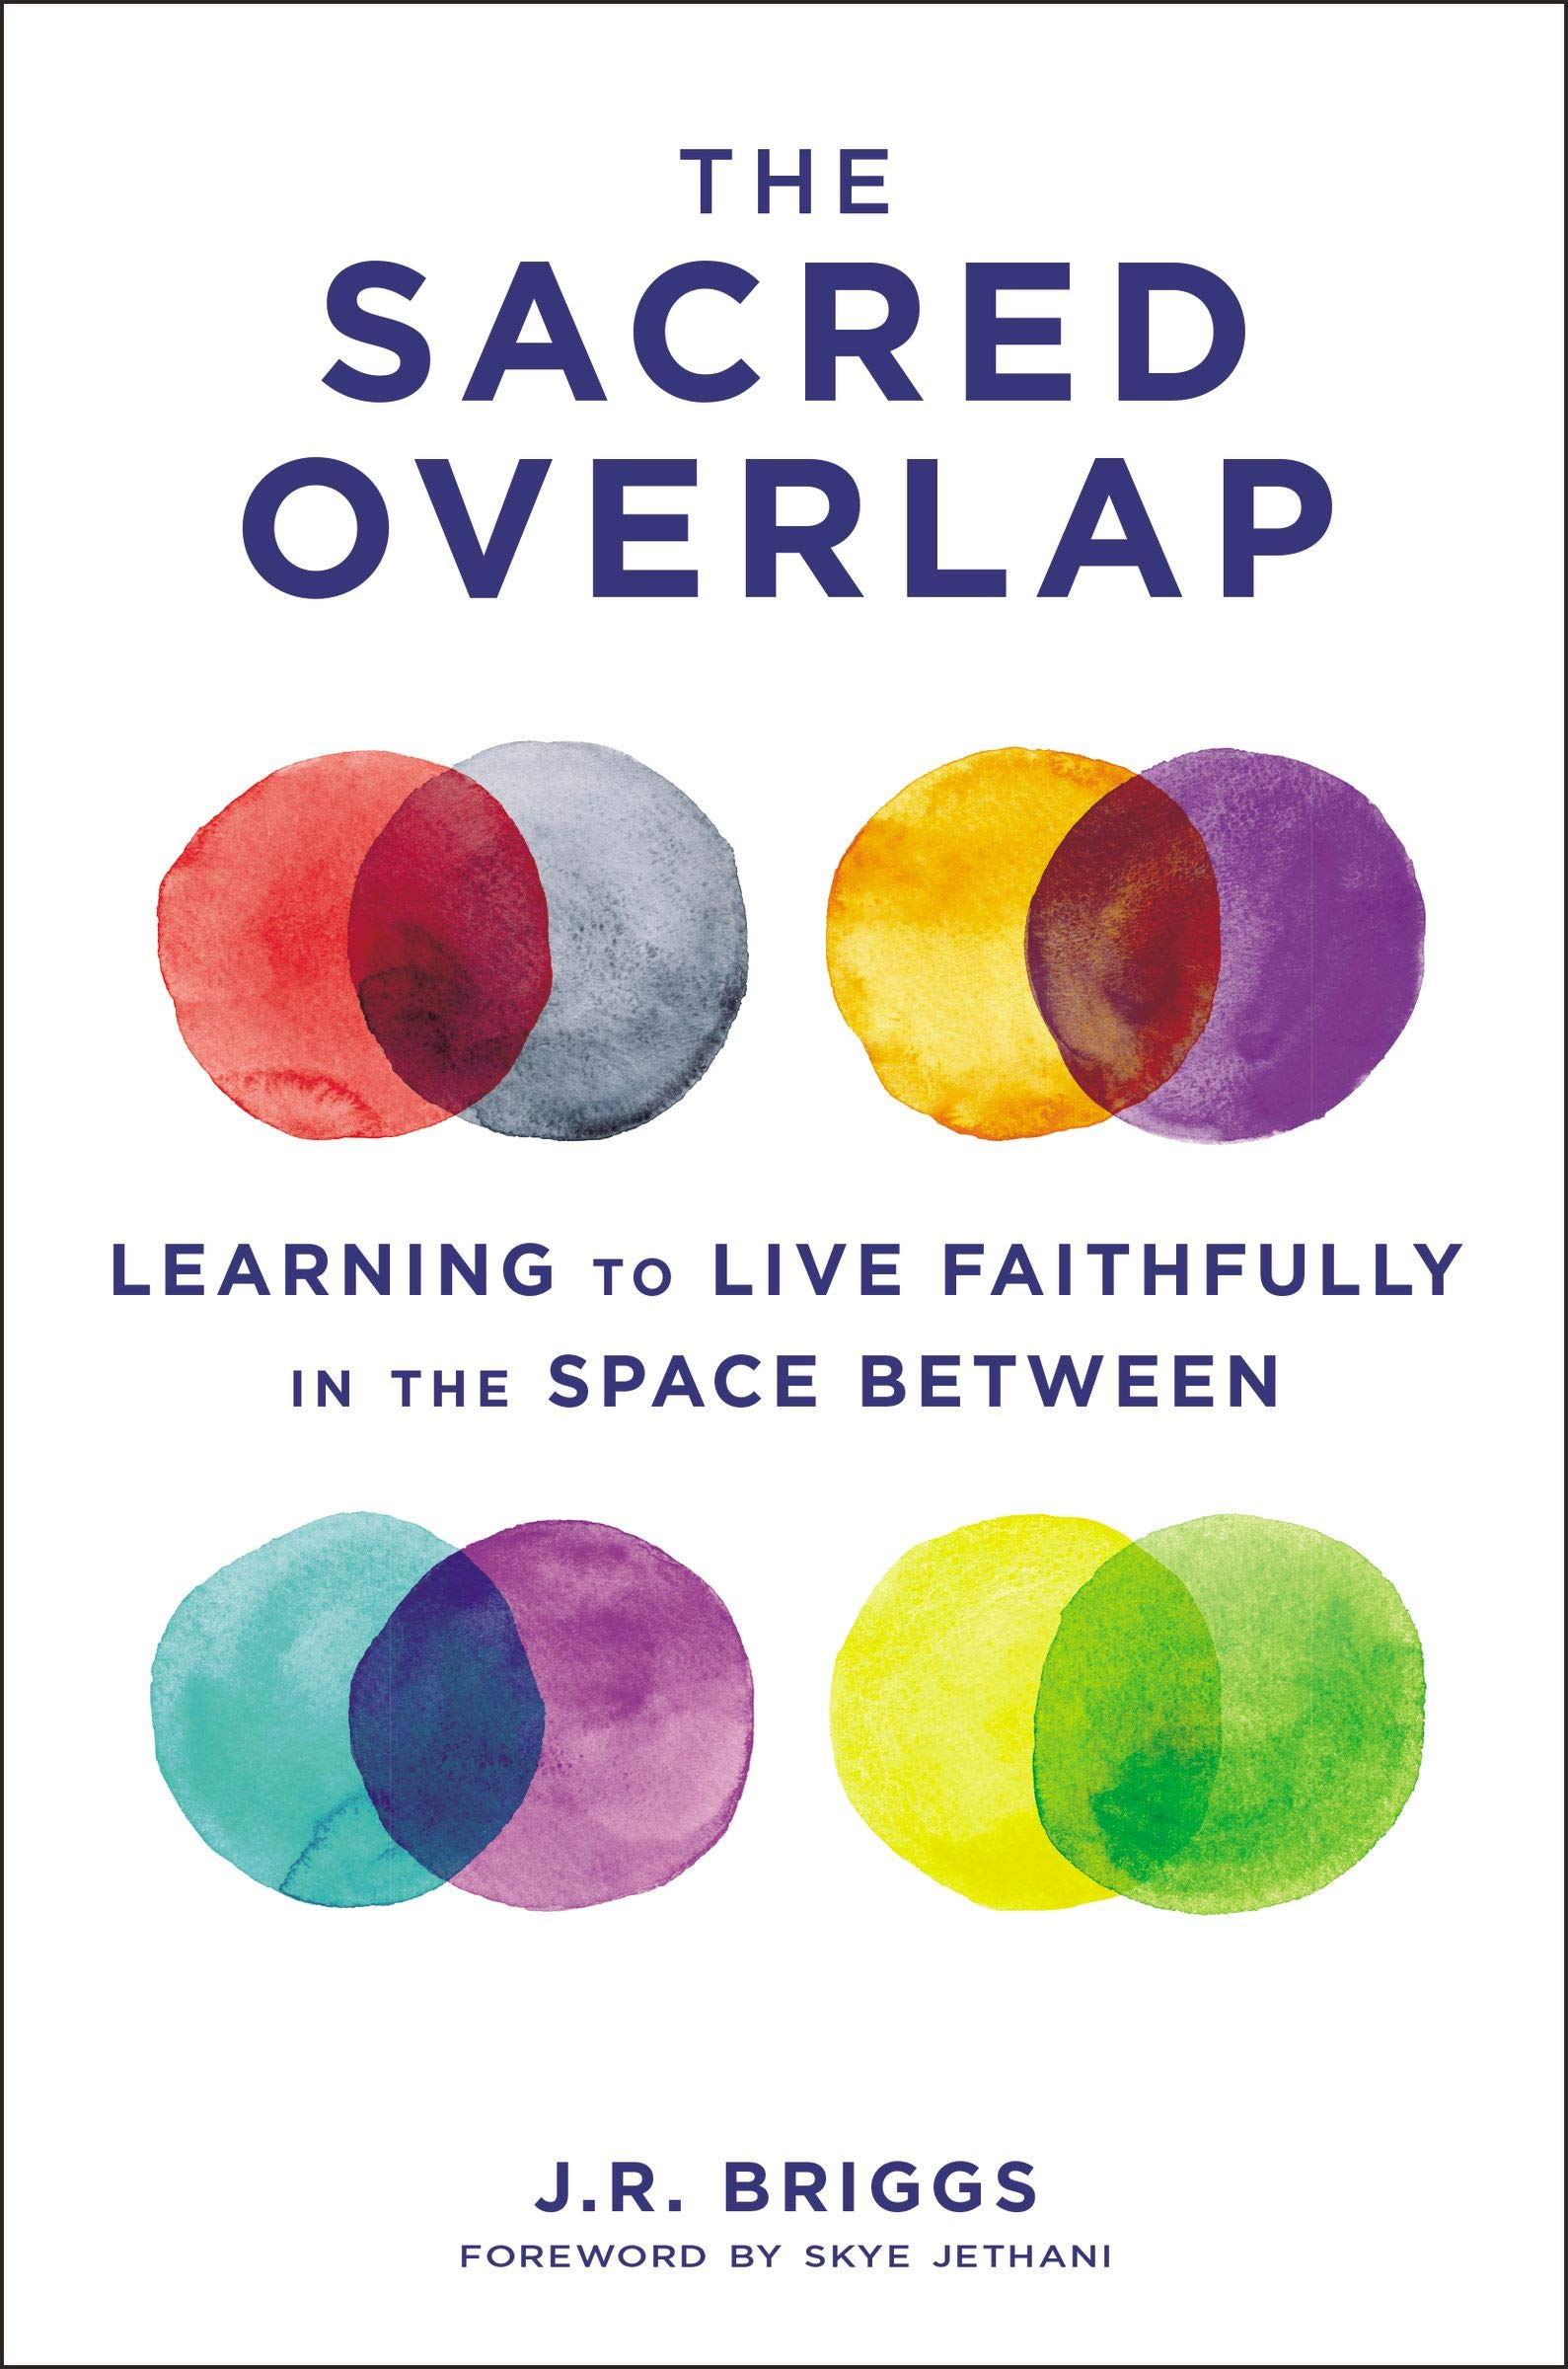 The Sacred Overlap: Learning to Live Faithfully in the Space Between  (Seedbed Resources): Briggs, J.R., Skye Jethani: Amazon.com: Books